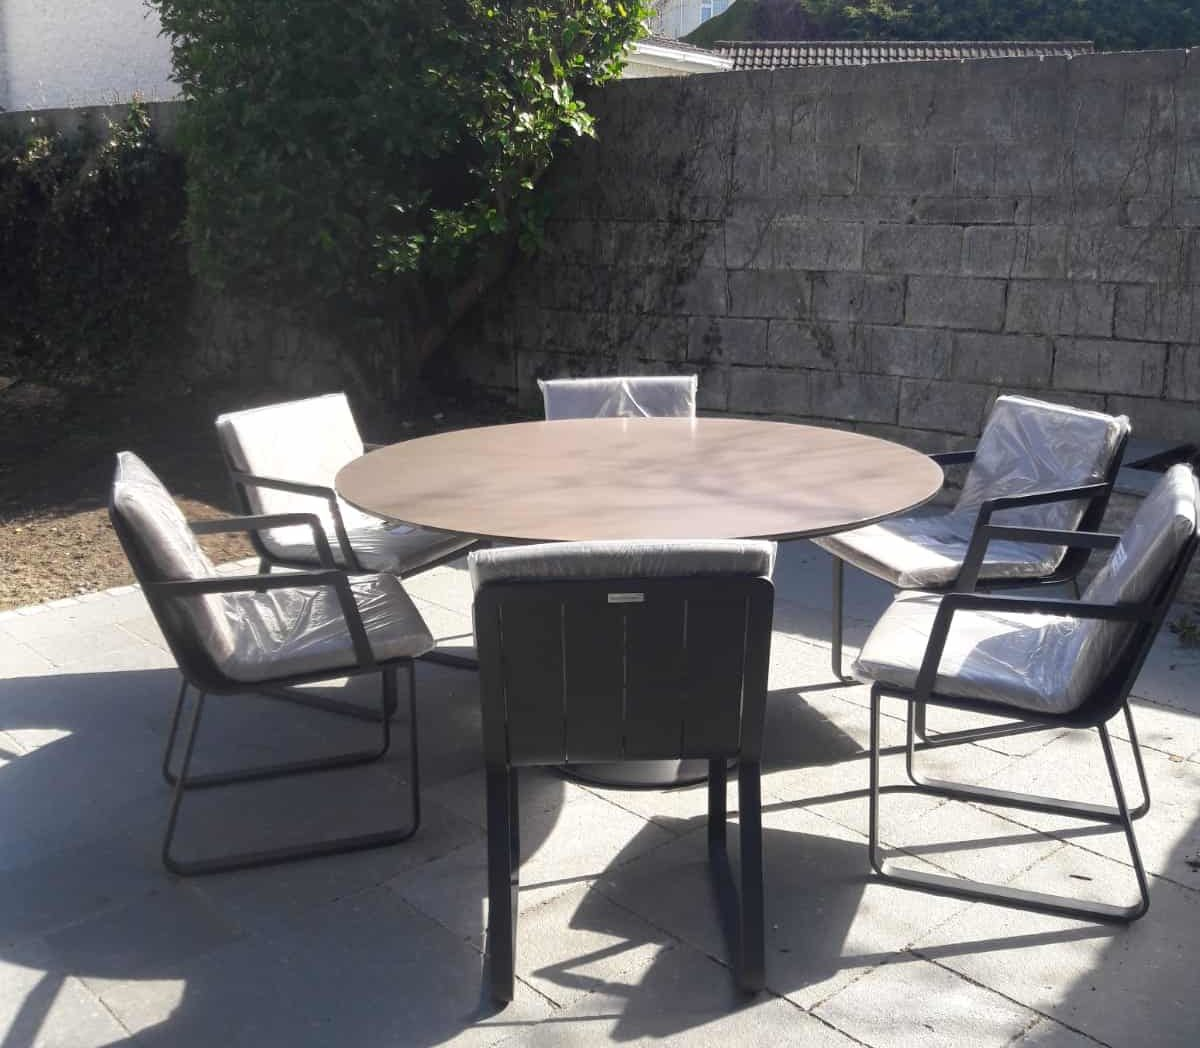 Fano 6 seater charcoal4 outdoor furniture for sale dublin ireland